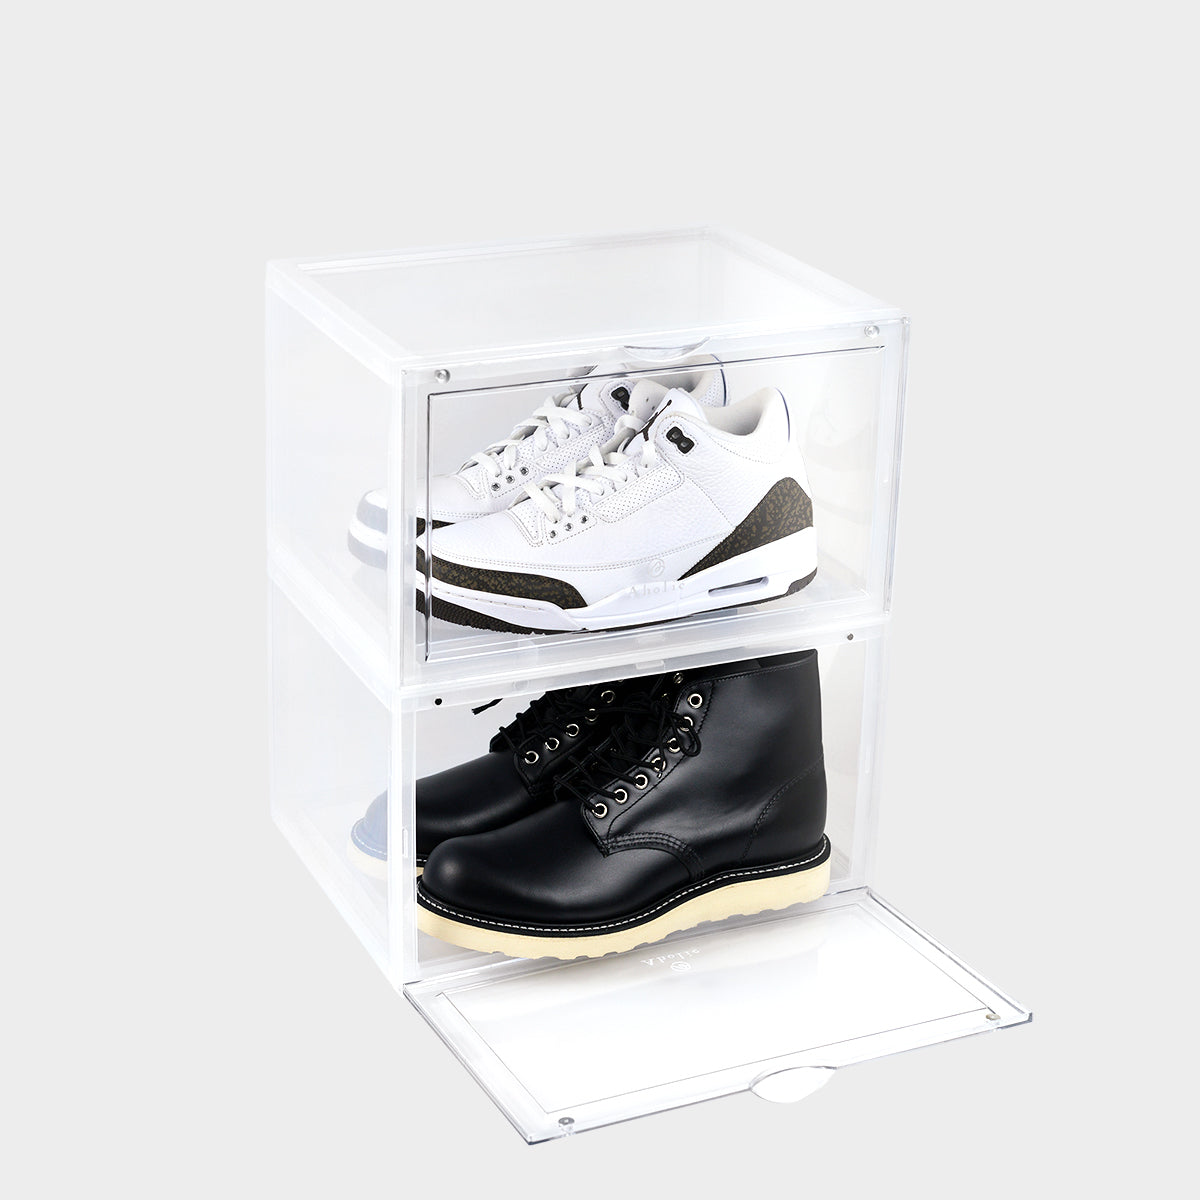 Aholic Magnetic Side Open Storage Shoe Box (側開式磁石波鞋收納盒) - Transparent (透明)-磁石鞋盒-Navy Selected Shop